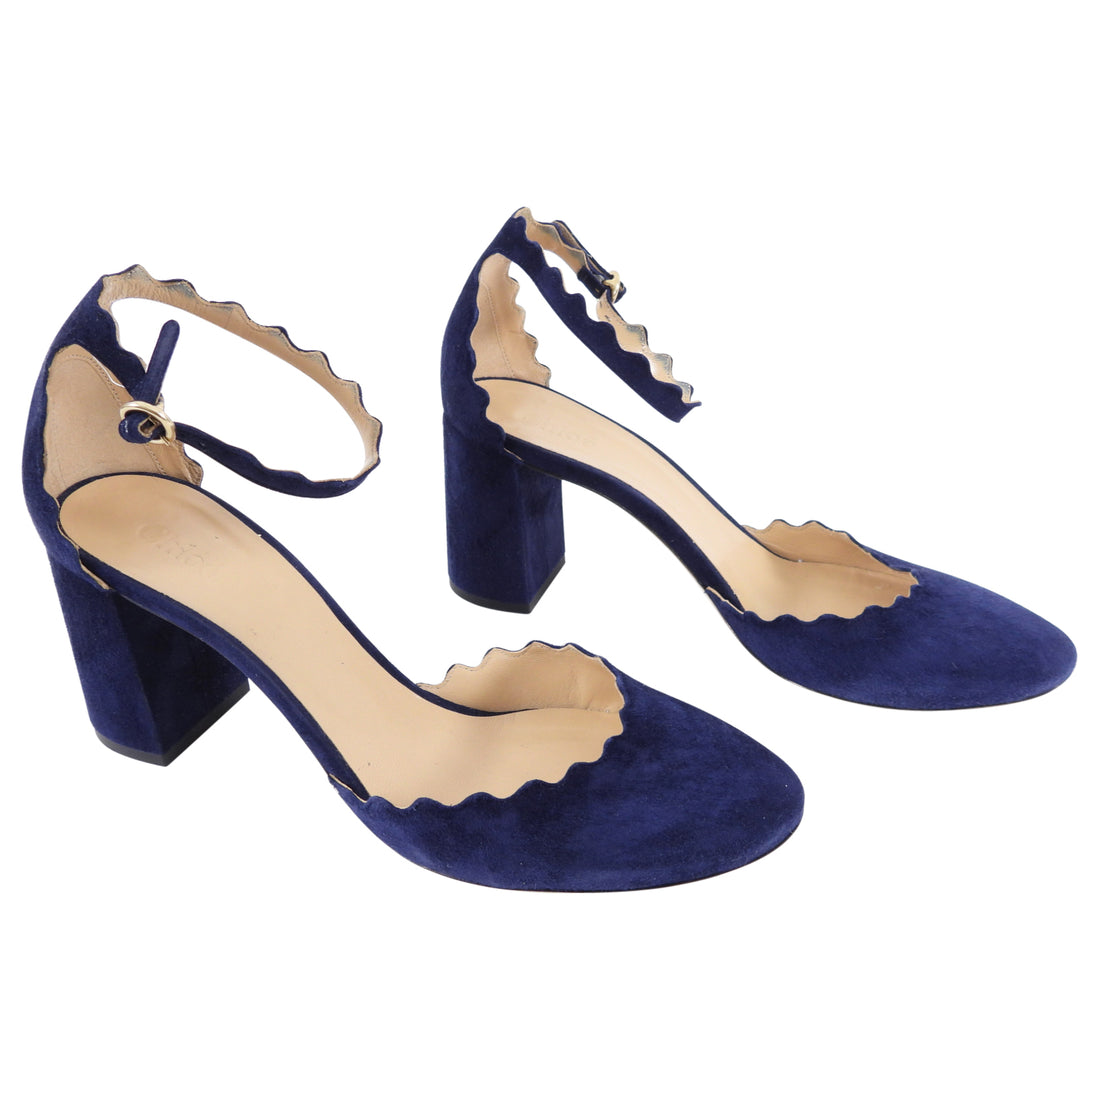 Chloe Navy Suede Scalloped D'Orsay Heels - 38.5 / 8